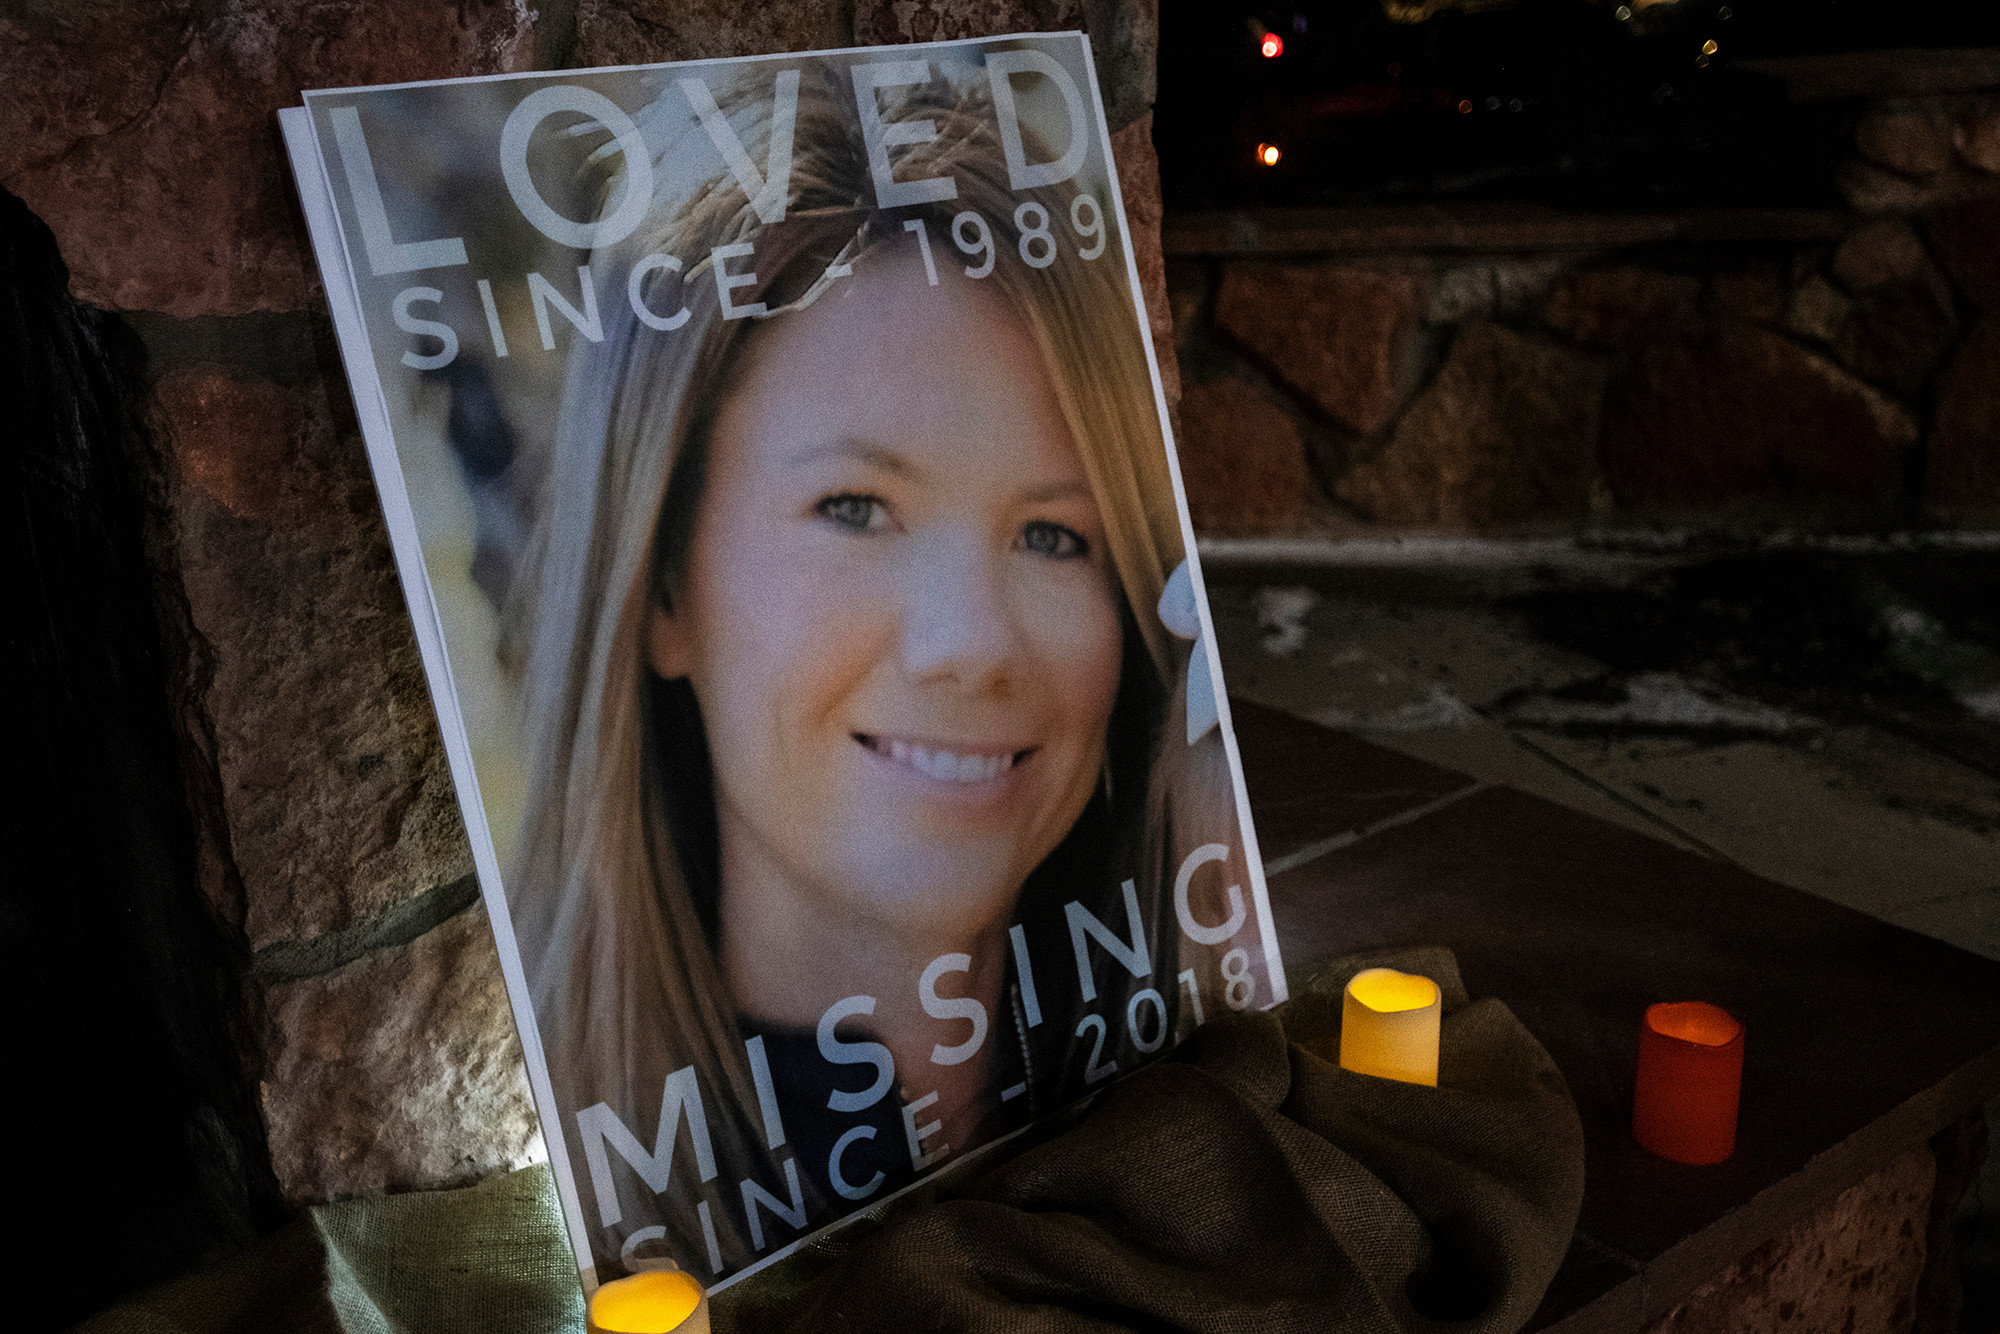 Nurse may have played role in Kelsey Berreth's disappearance